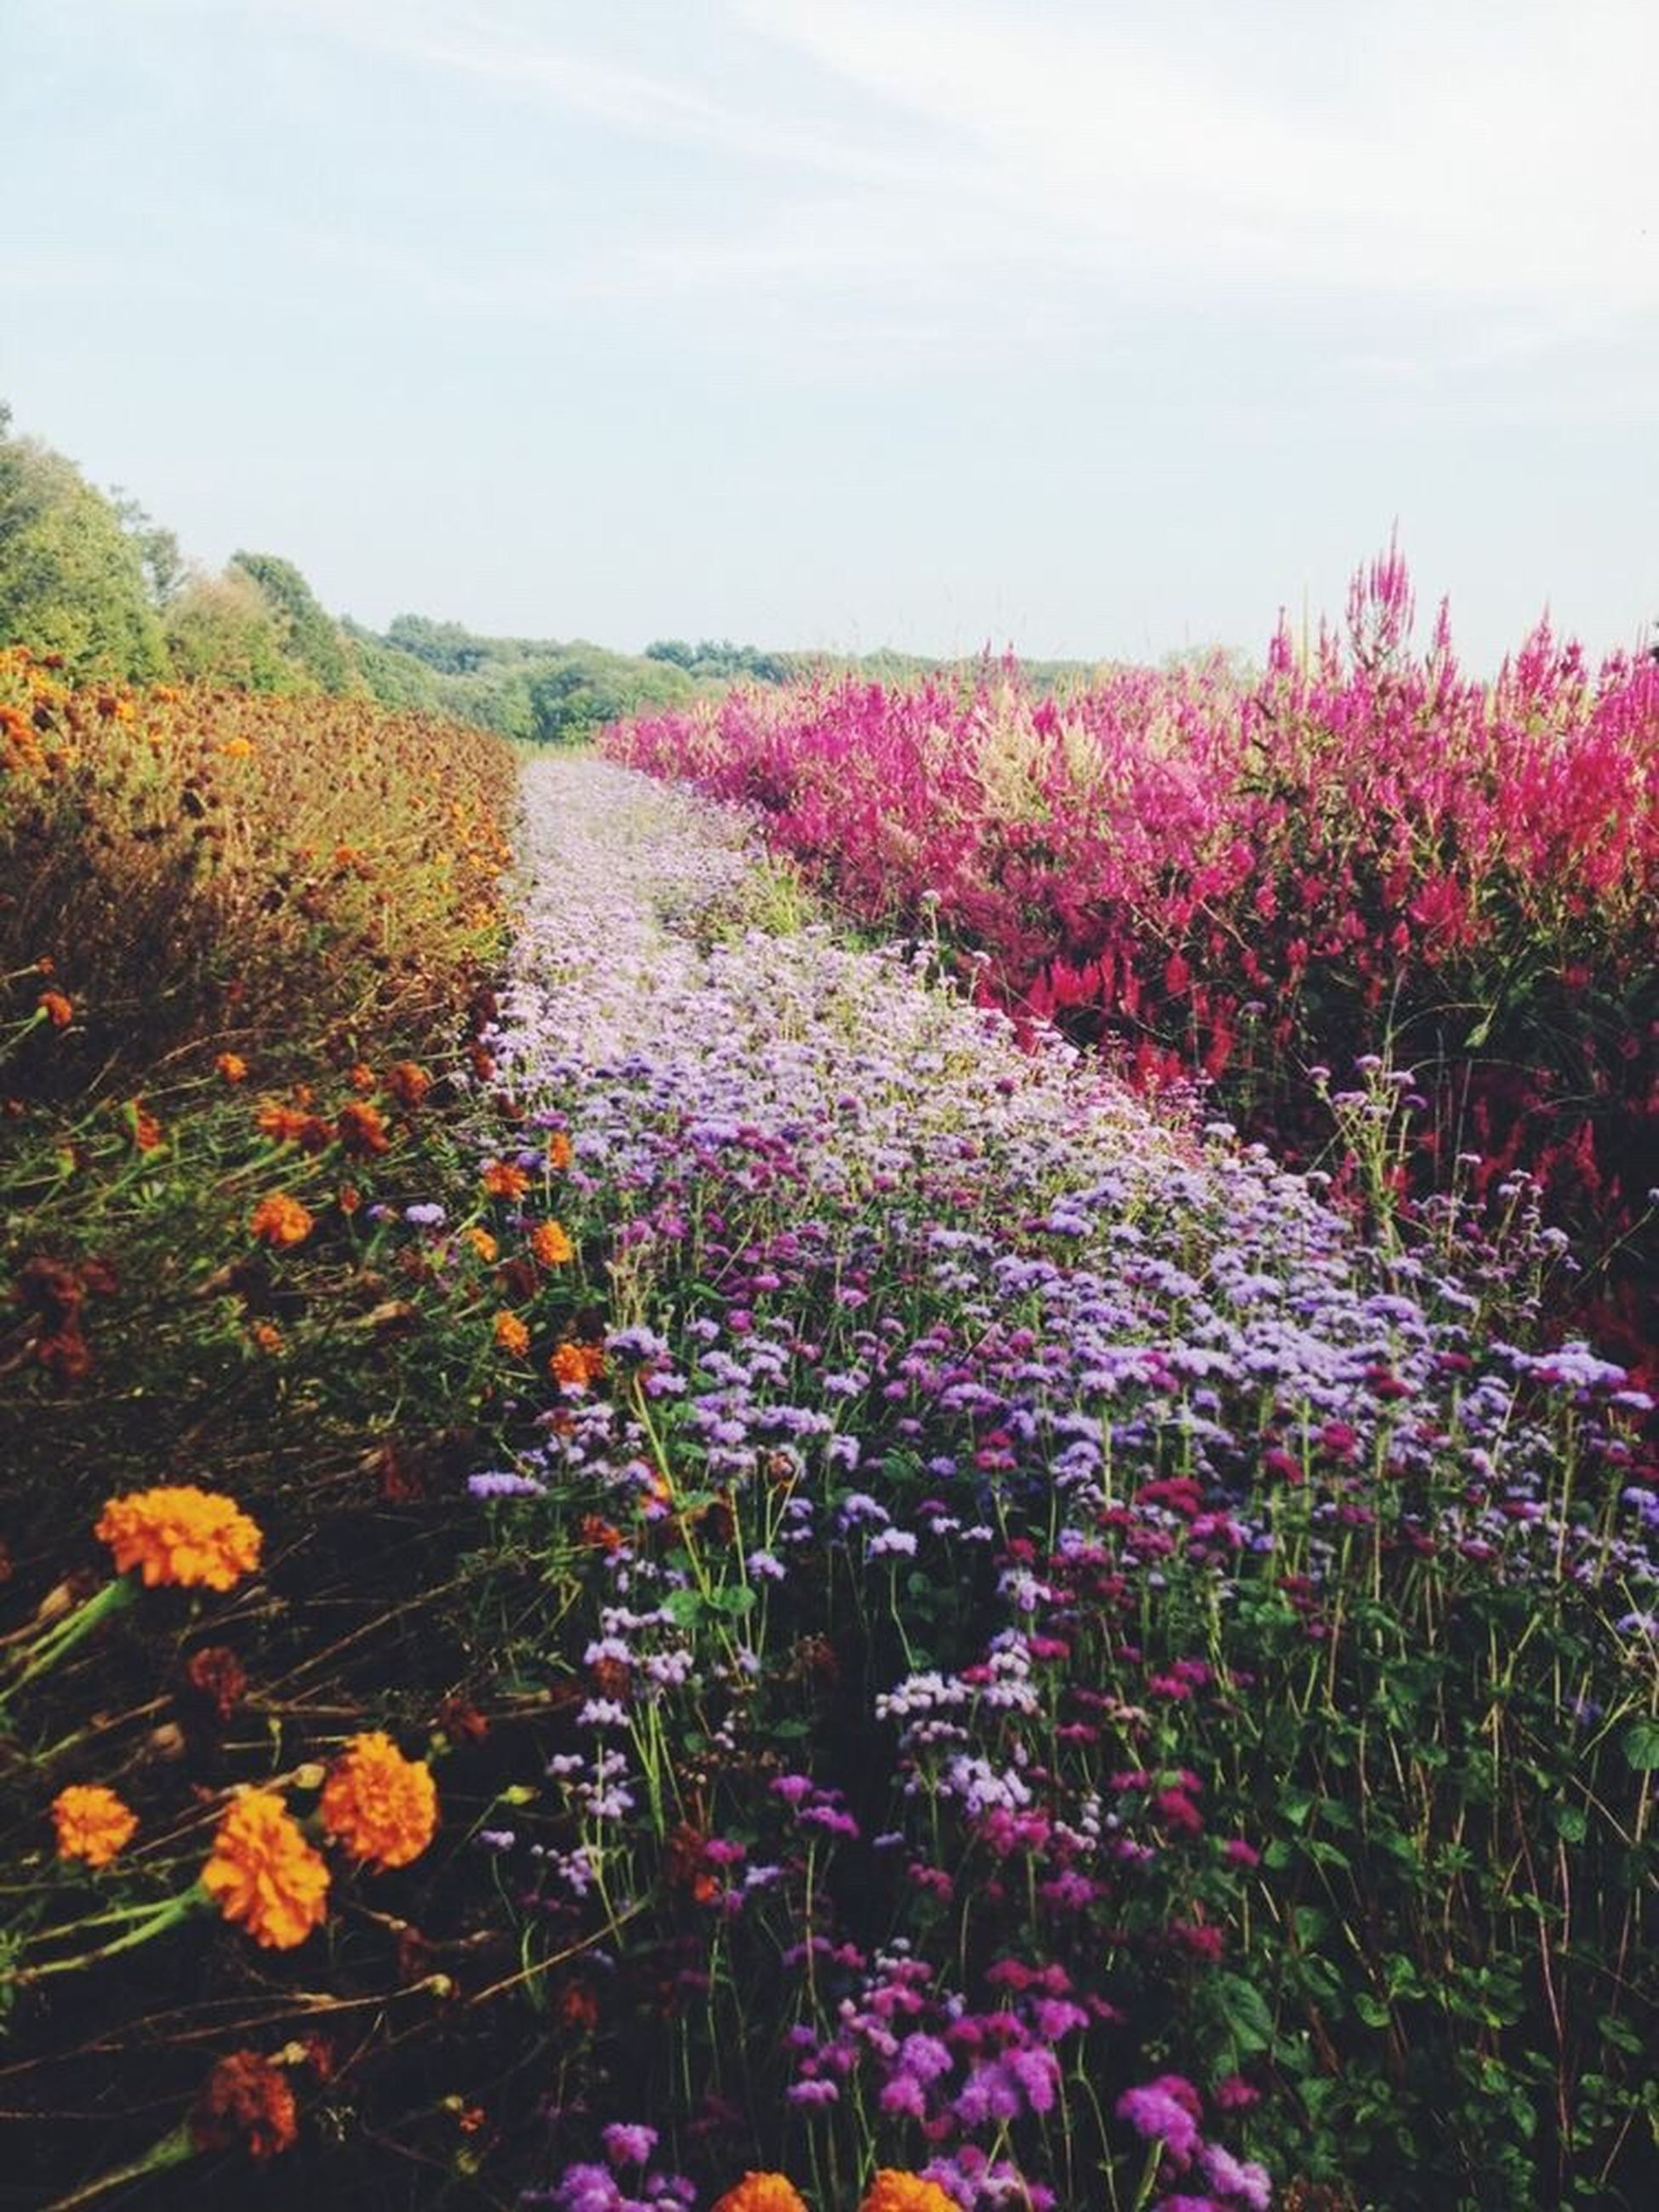 flower, nature, growth, beauty in nature, field, plant, no people, tranquility, landscape, purple, outdoors, day, scenics, sky, blooming, freshness, tree, fragility